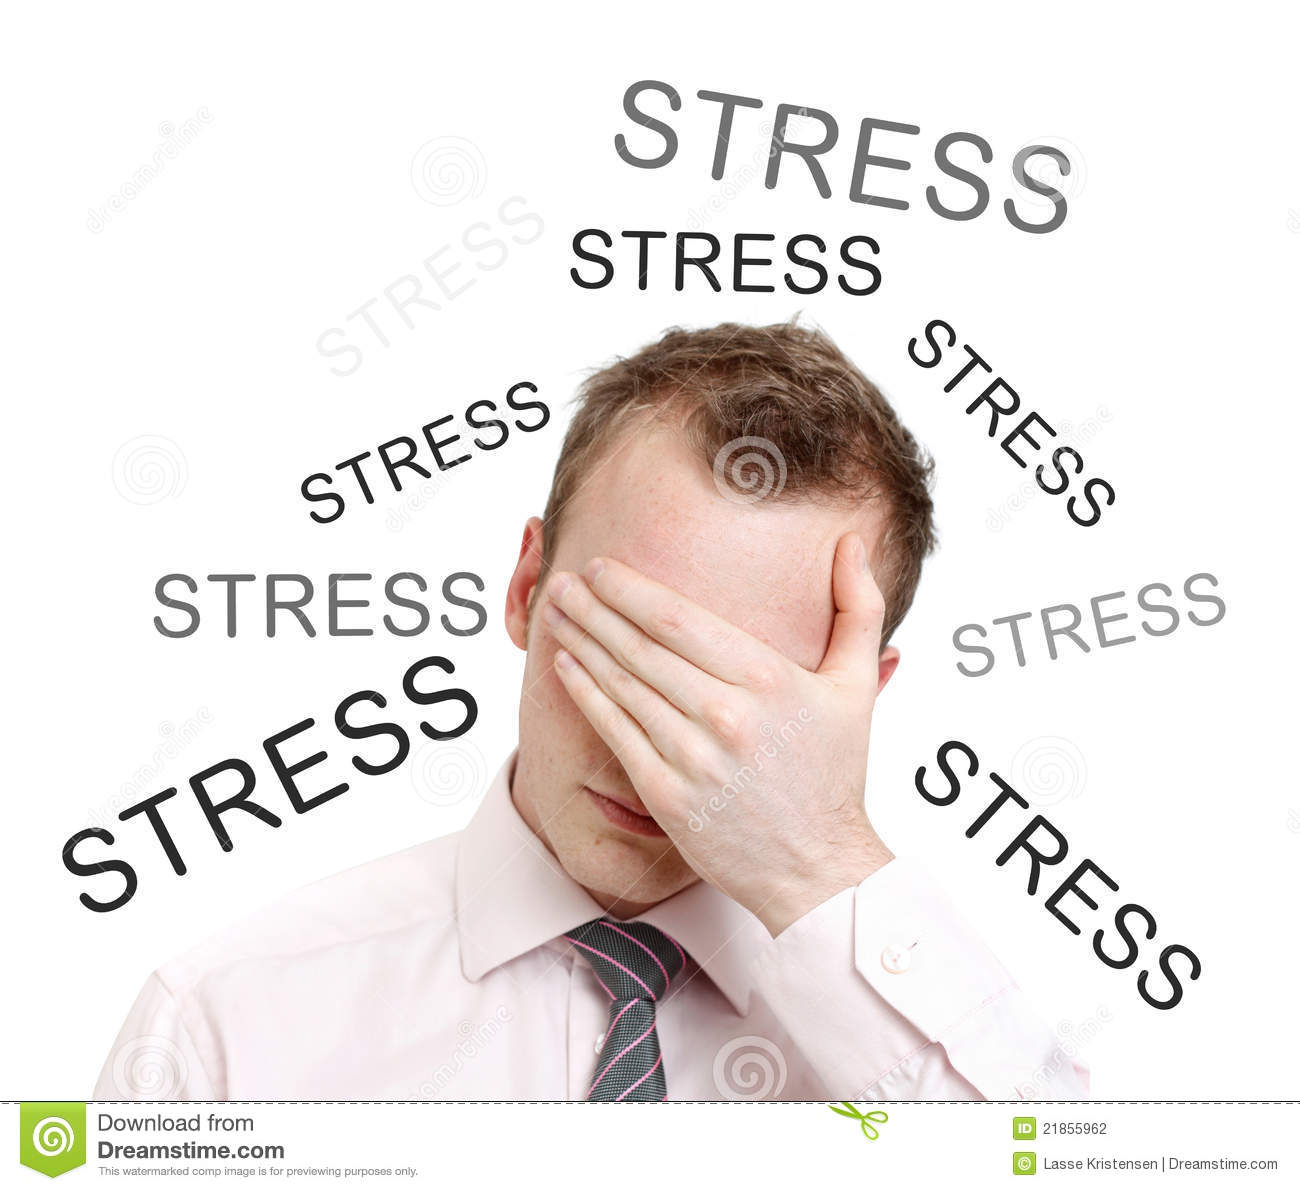 how to get stress feleaff